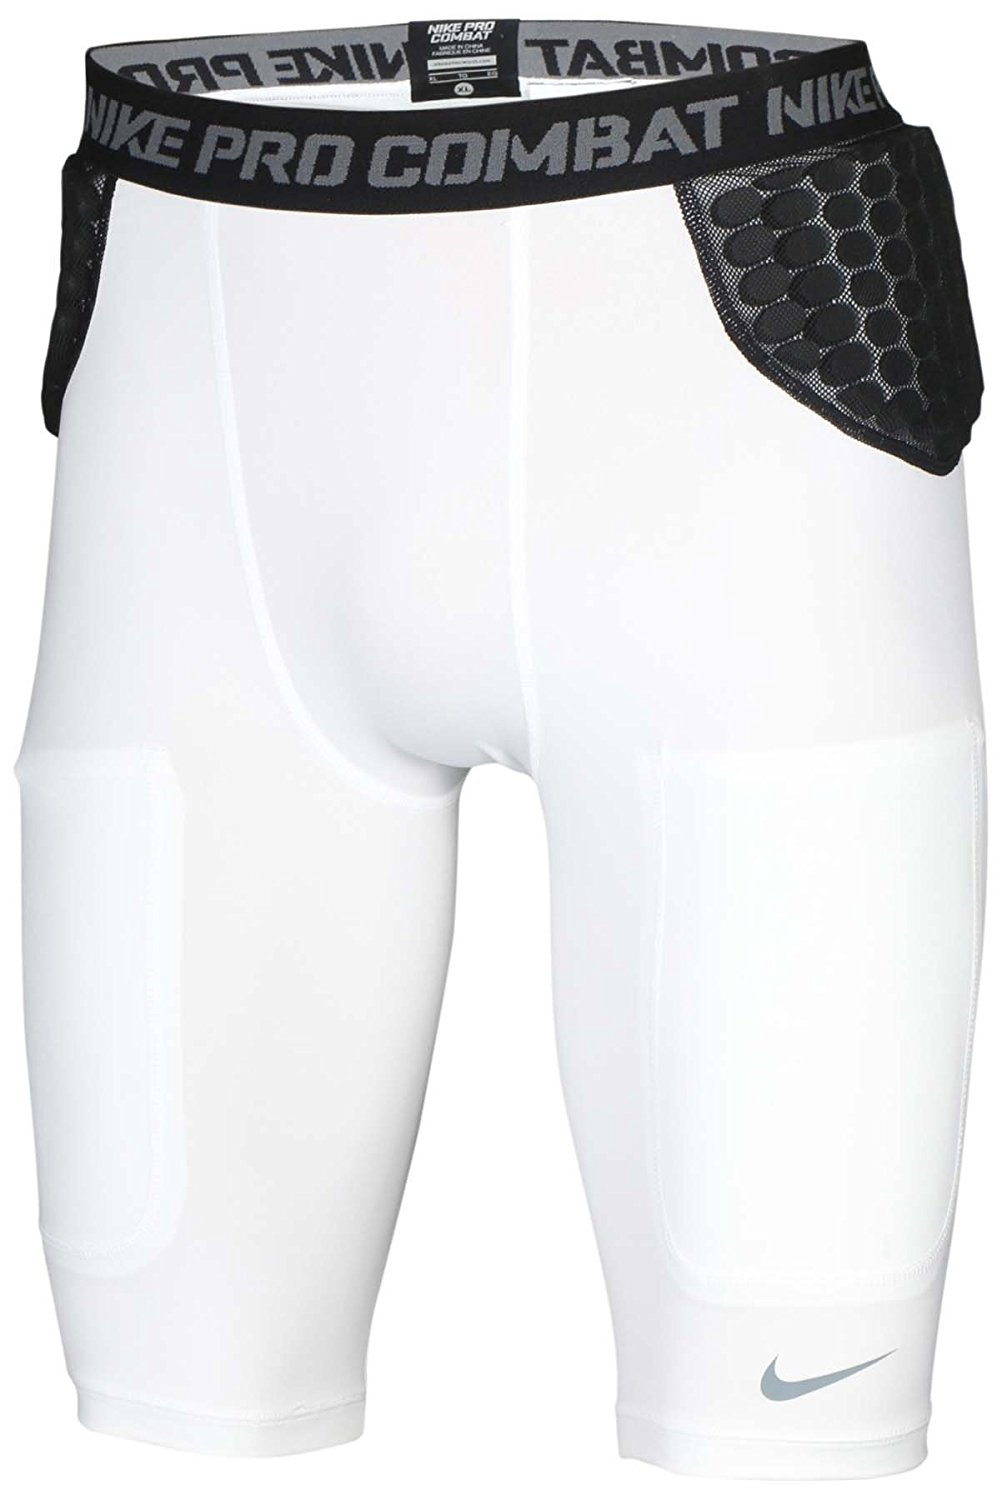 799835921881 Get Quotations · Nike Men s Pro Combat Hyperstrong Padded Football Shorts -White Black